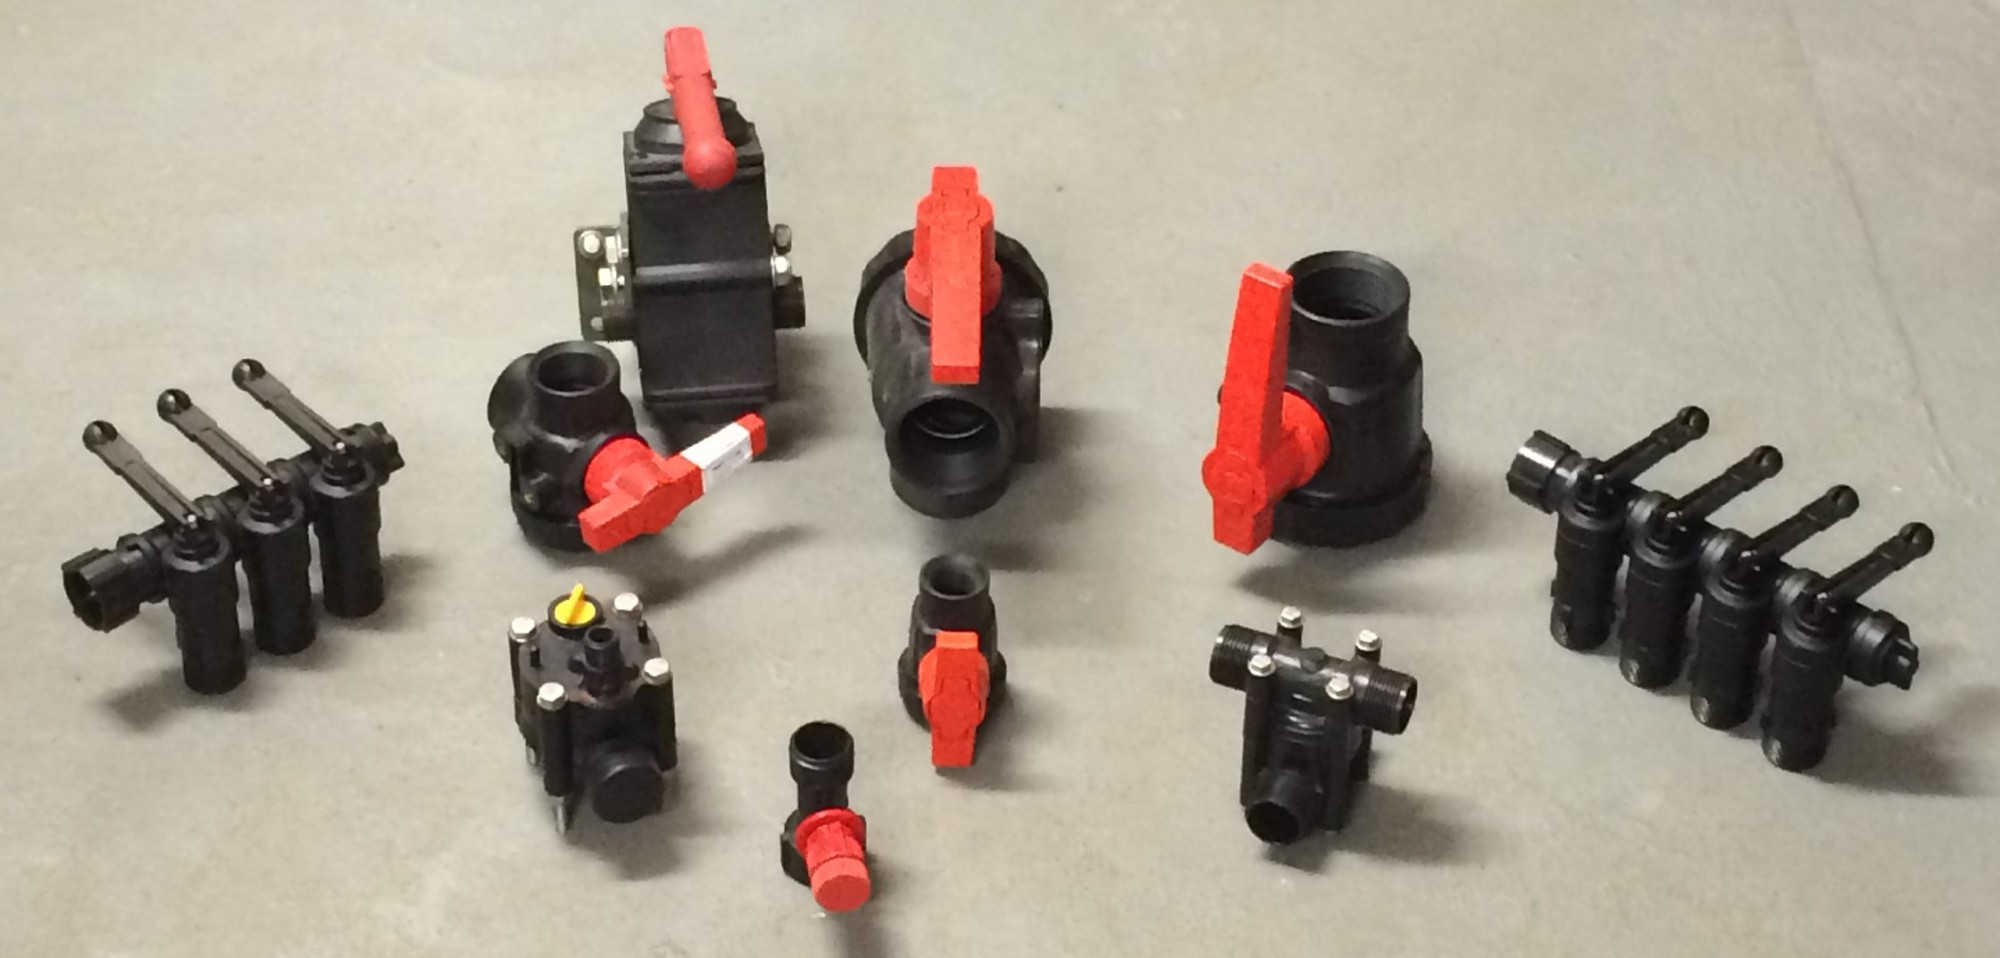 SKU: ~6714751 Manual and Calibrating valves